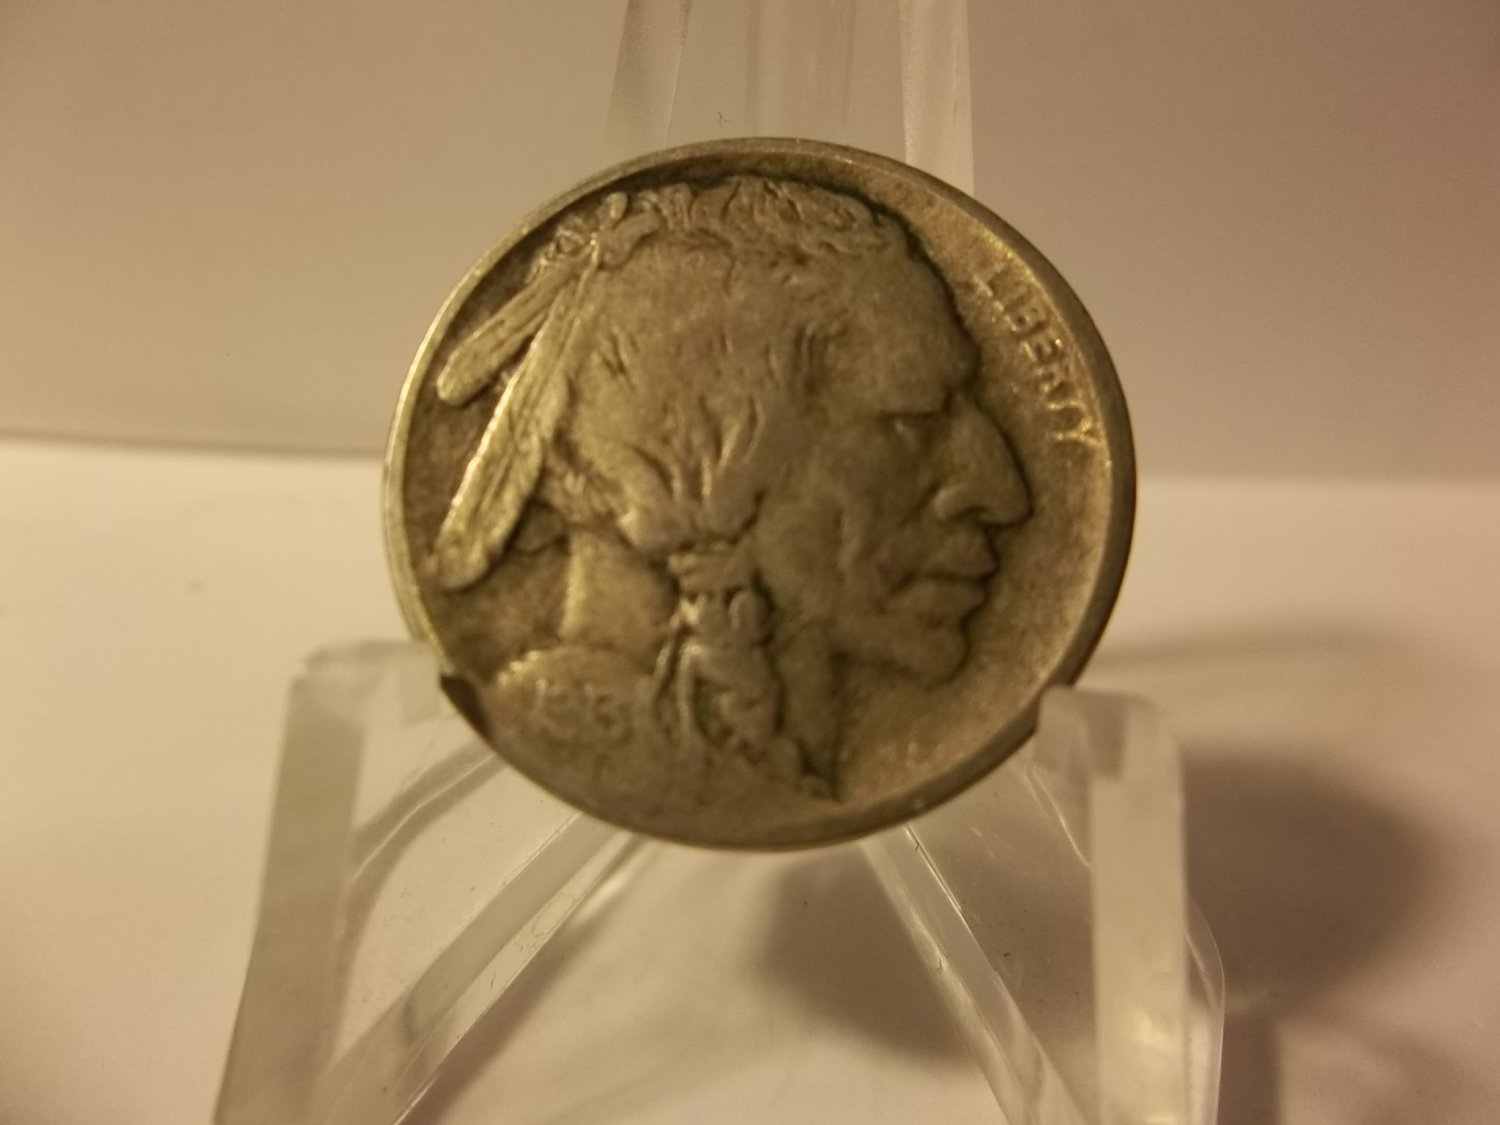 1913 TY-2 #3 Buffalo Nickel with almost full horn